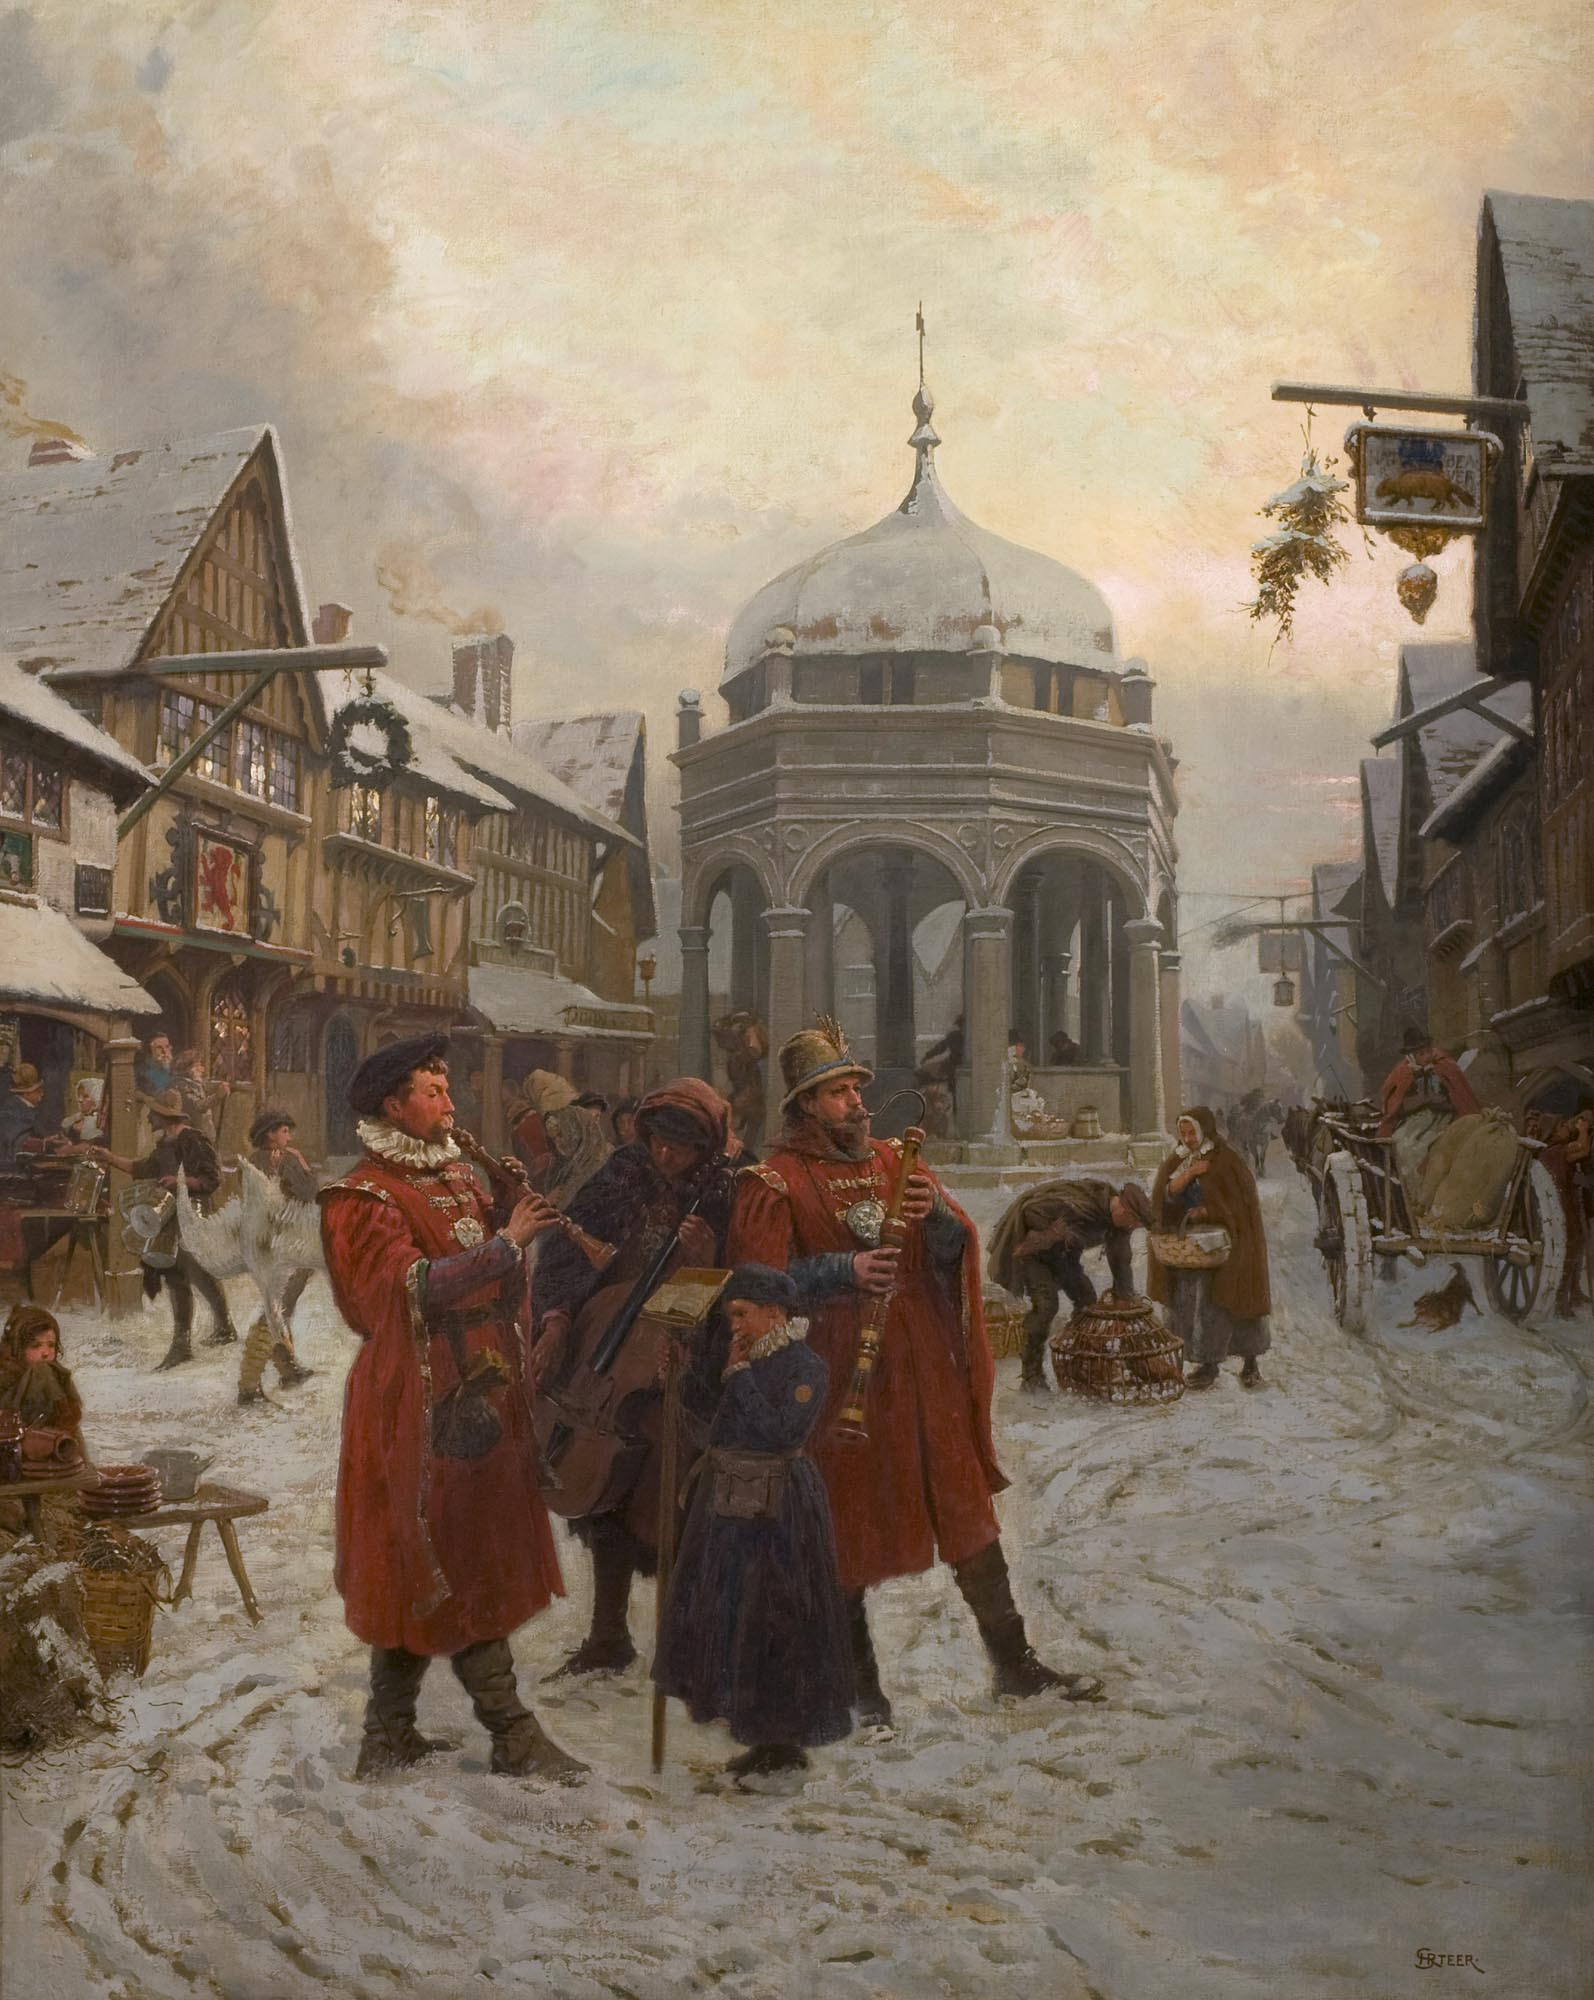 'Christmas Eve, Highcross Market, Leicester 16th century' oil painting, 1900, by Henry Reynolds Steer -